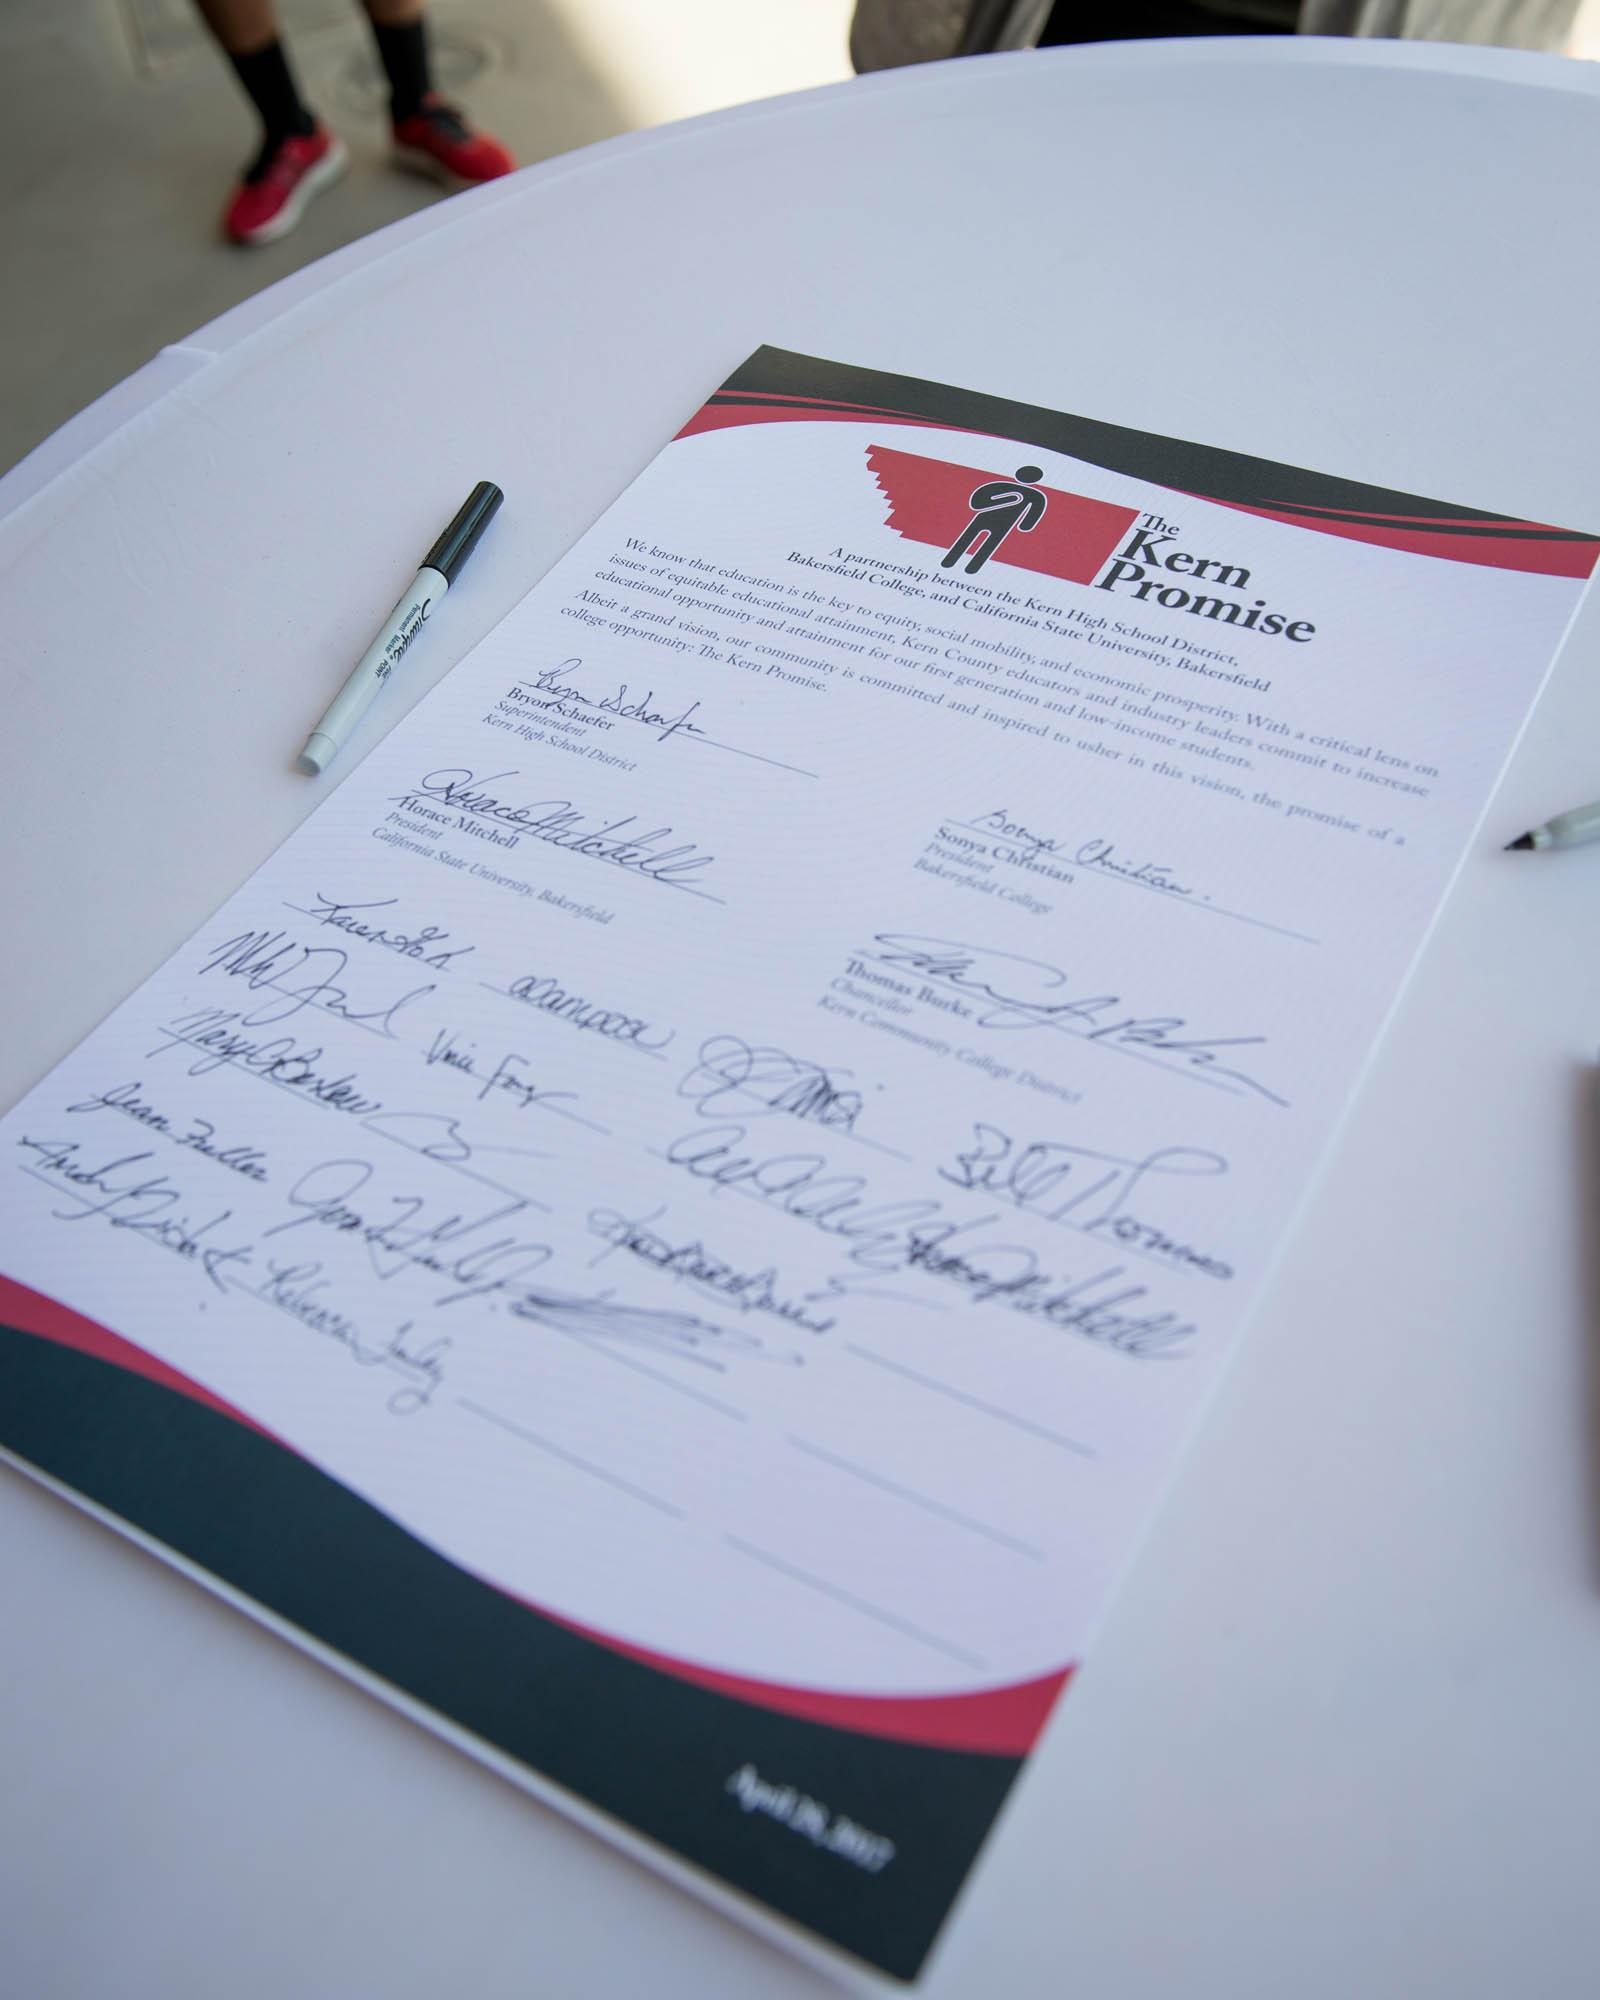 Picture of signed Kern Promise document